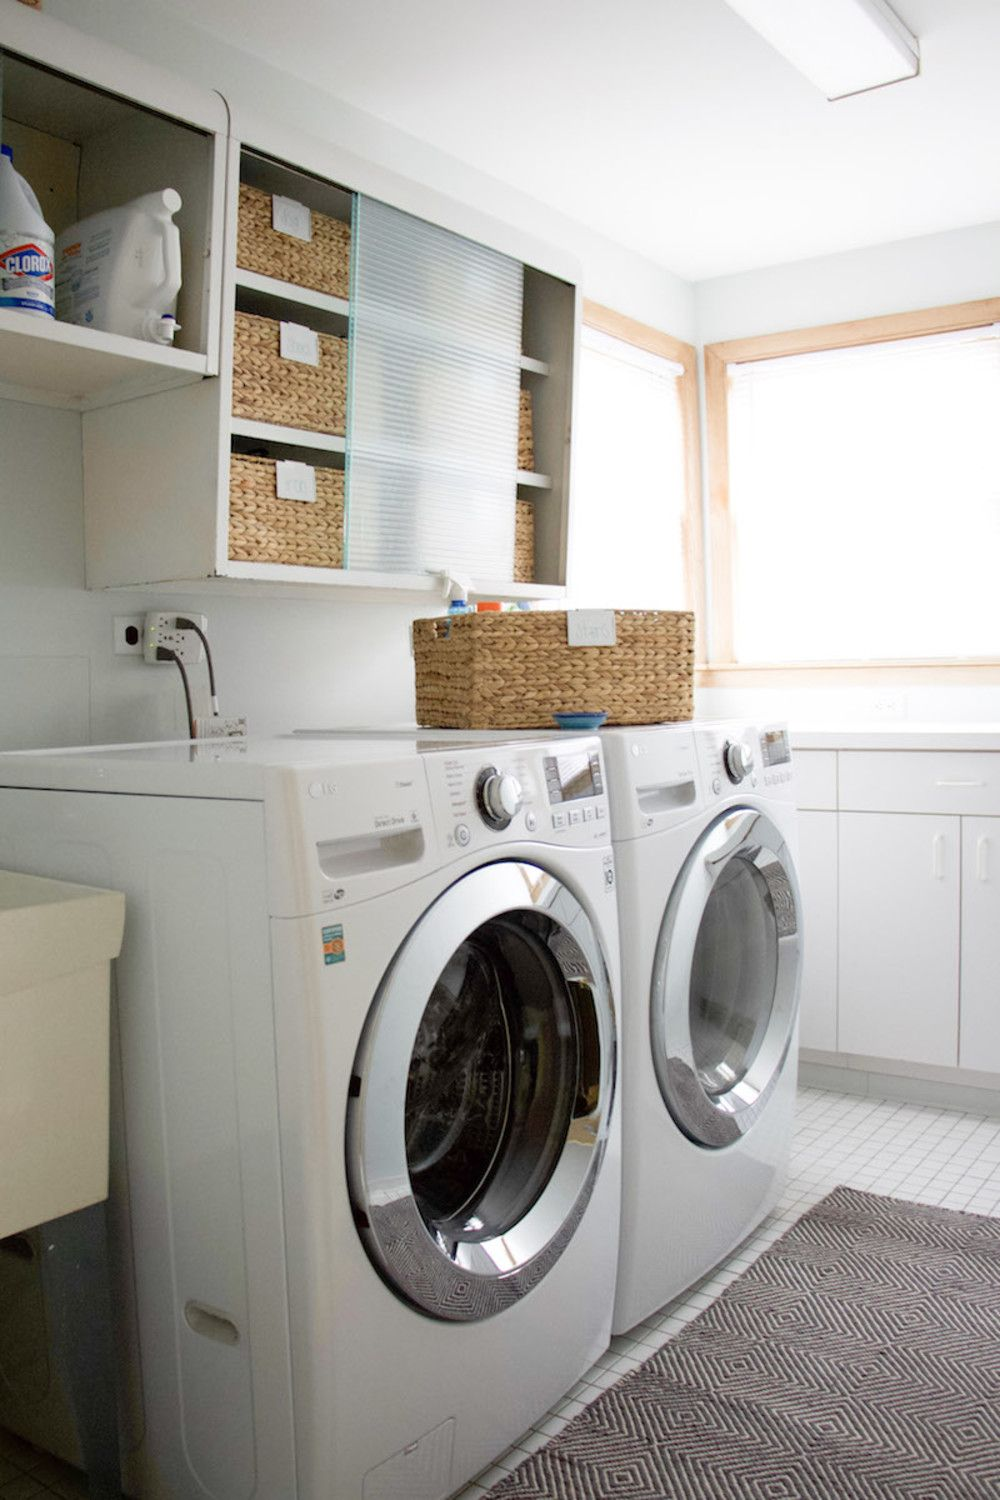 Learn Tips For Organizing An Laundry Room From Professional